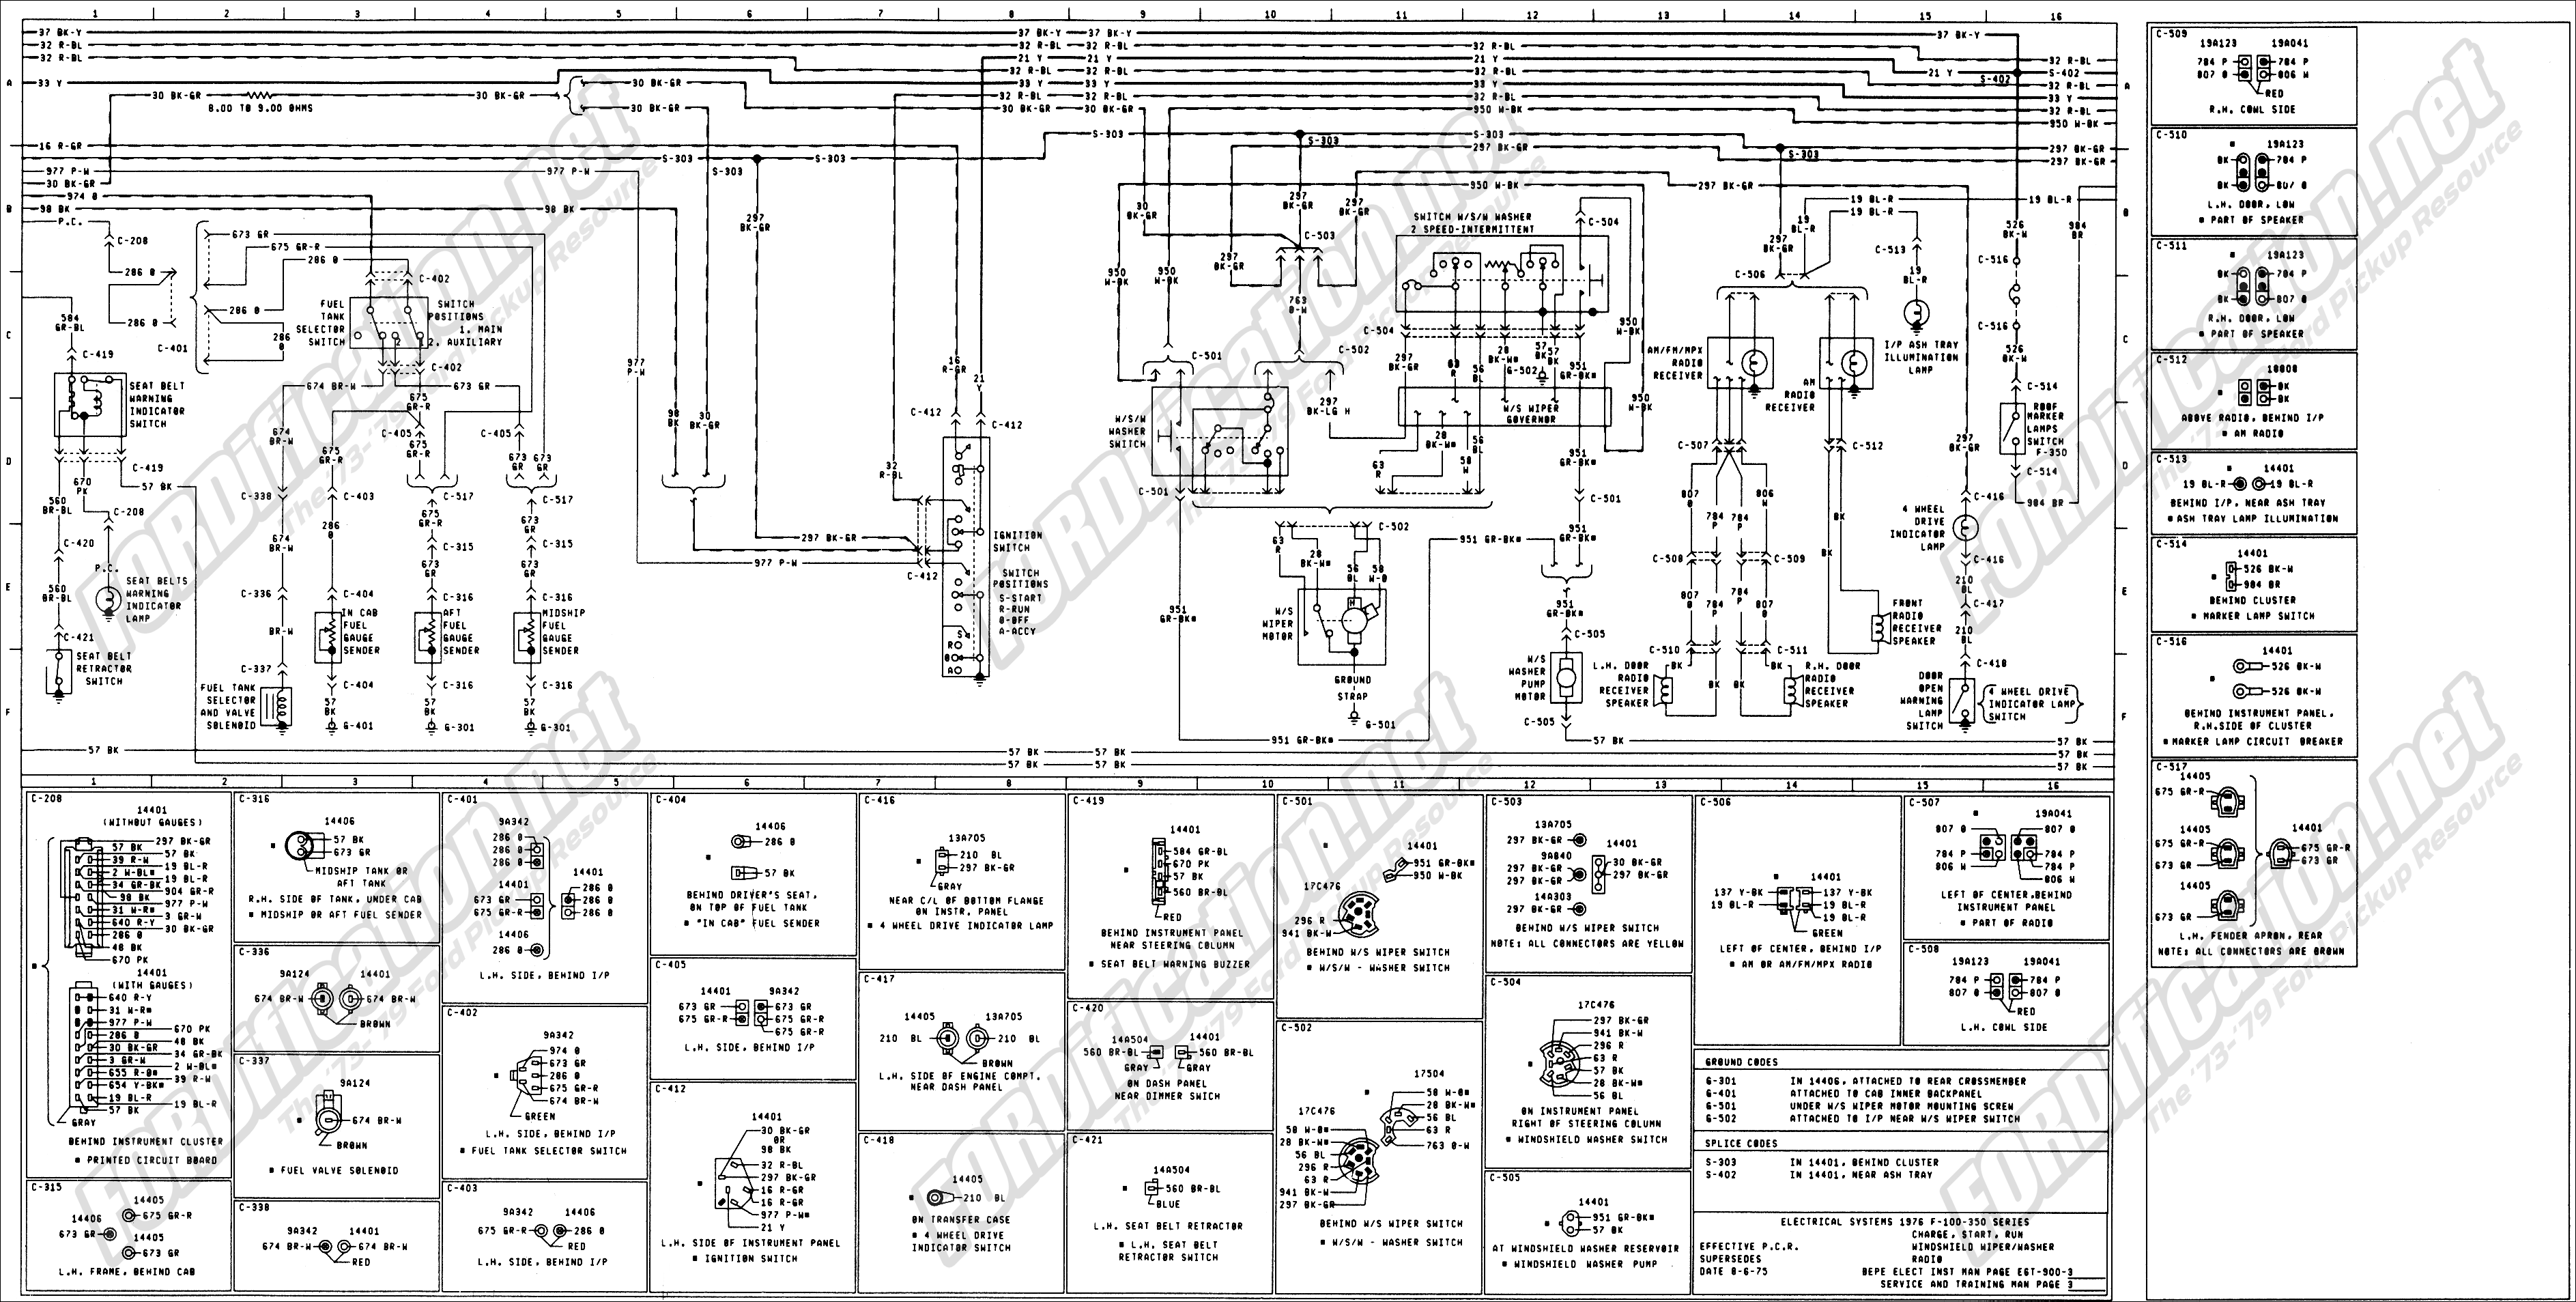 2003 Gmc Envoy Fuse Box Diagram | New Wiring Resources 2019  Envoy Fuse Schematic Diagram on